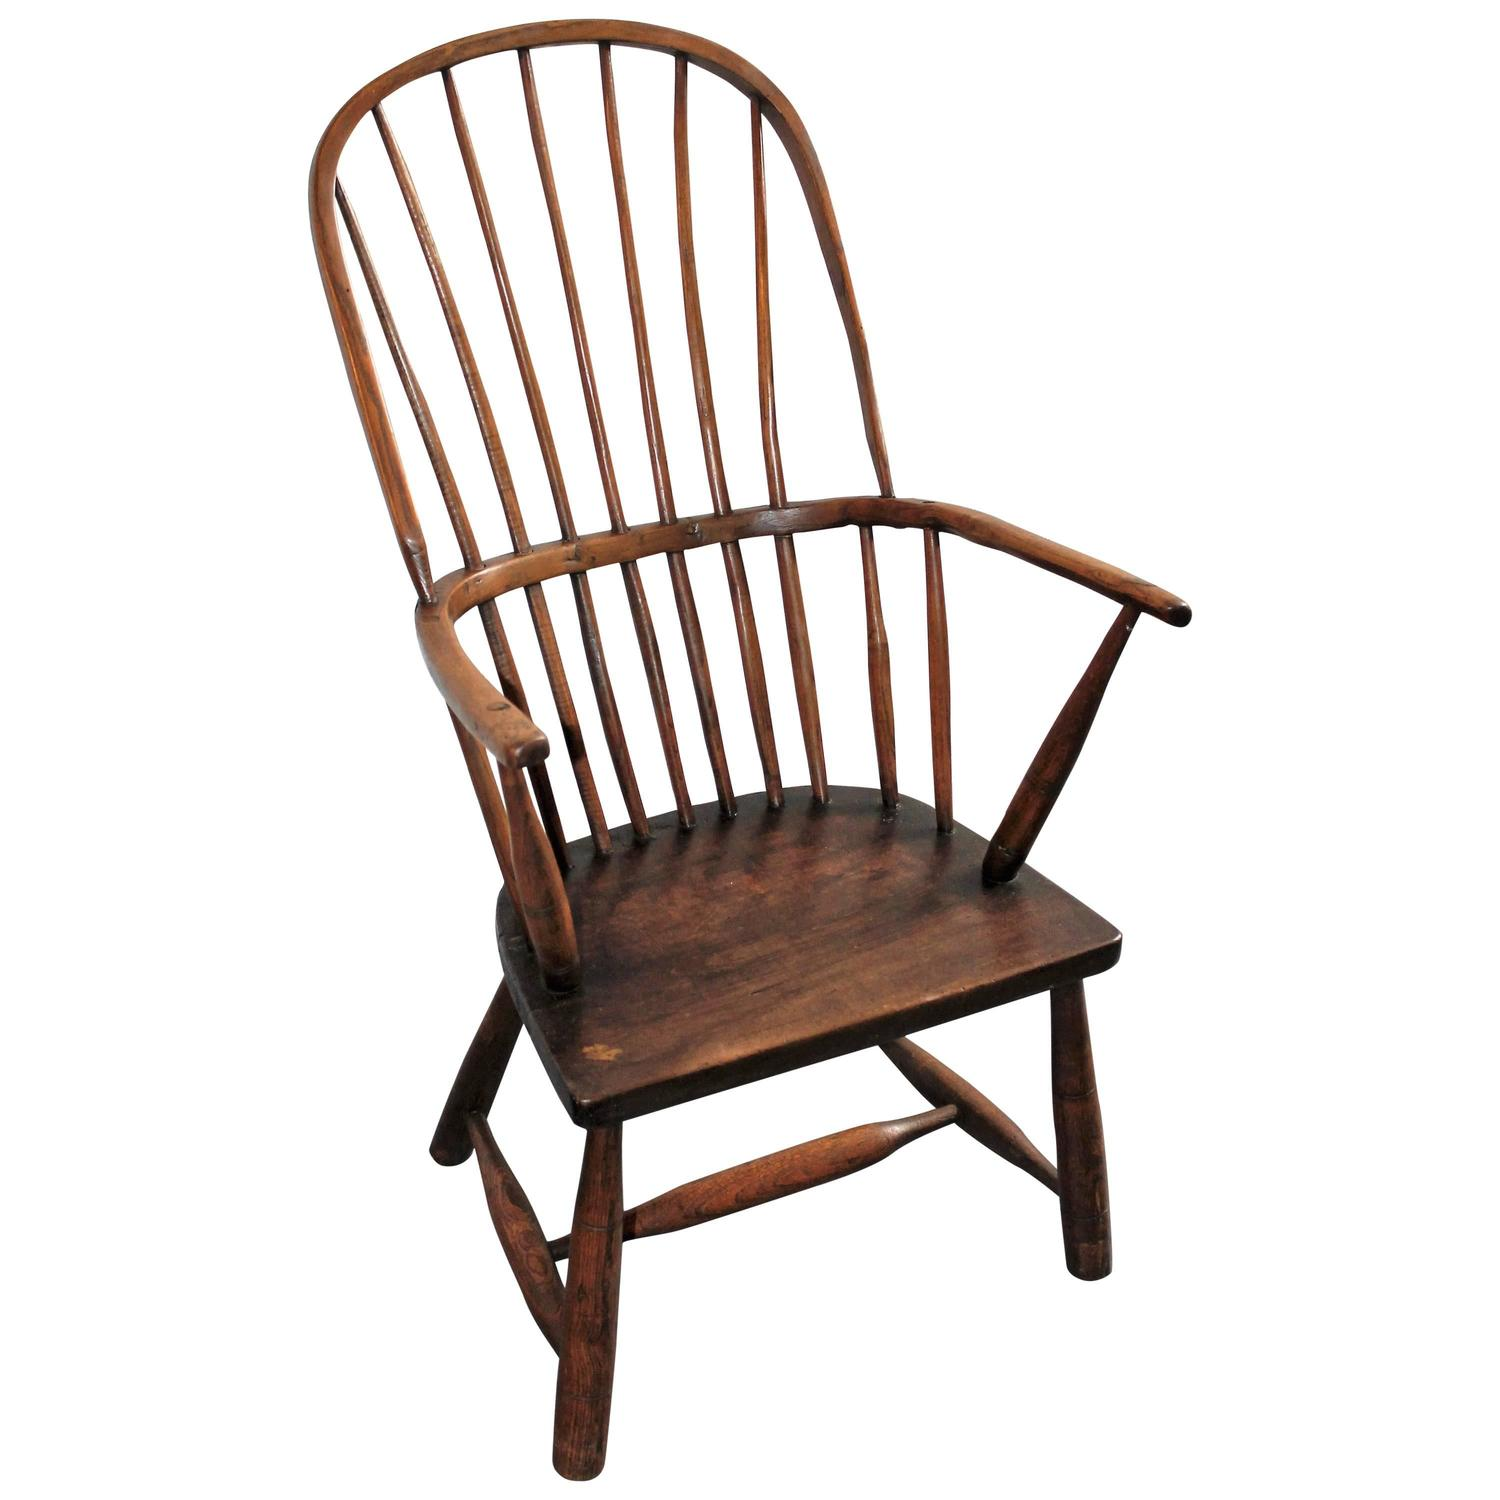 windsor back chairs for sale chair cover rental sioux city early 19th century english high